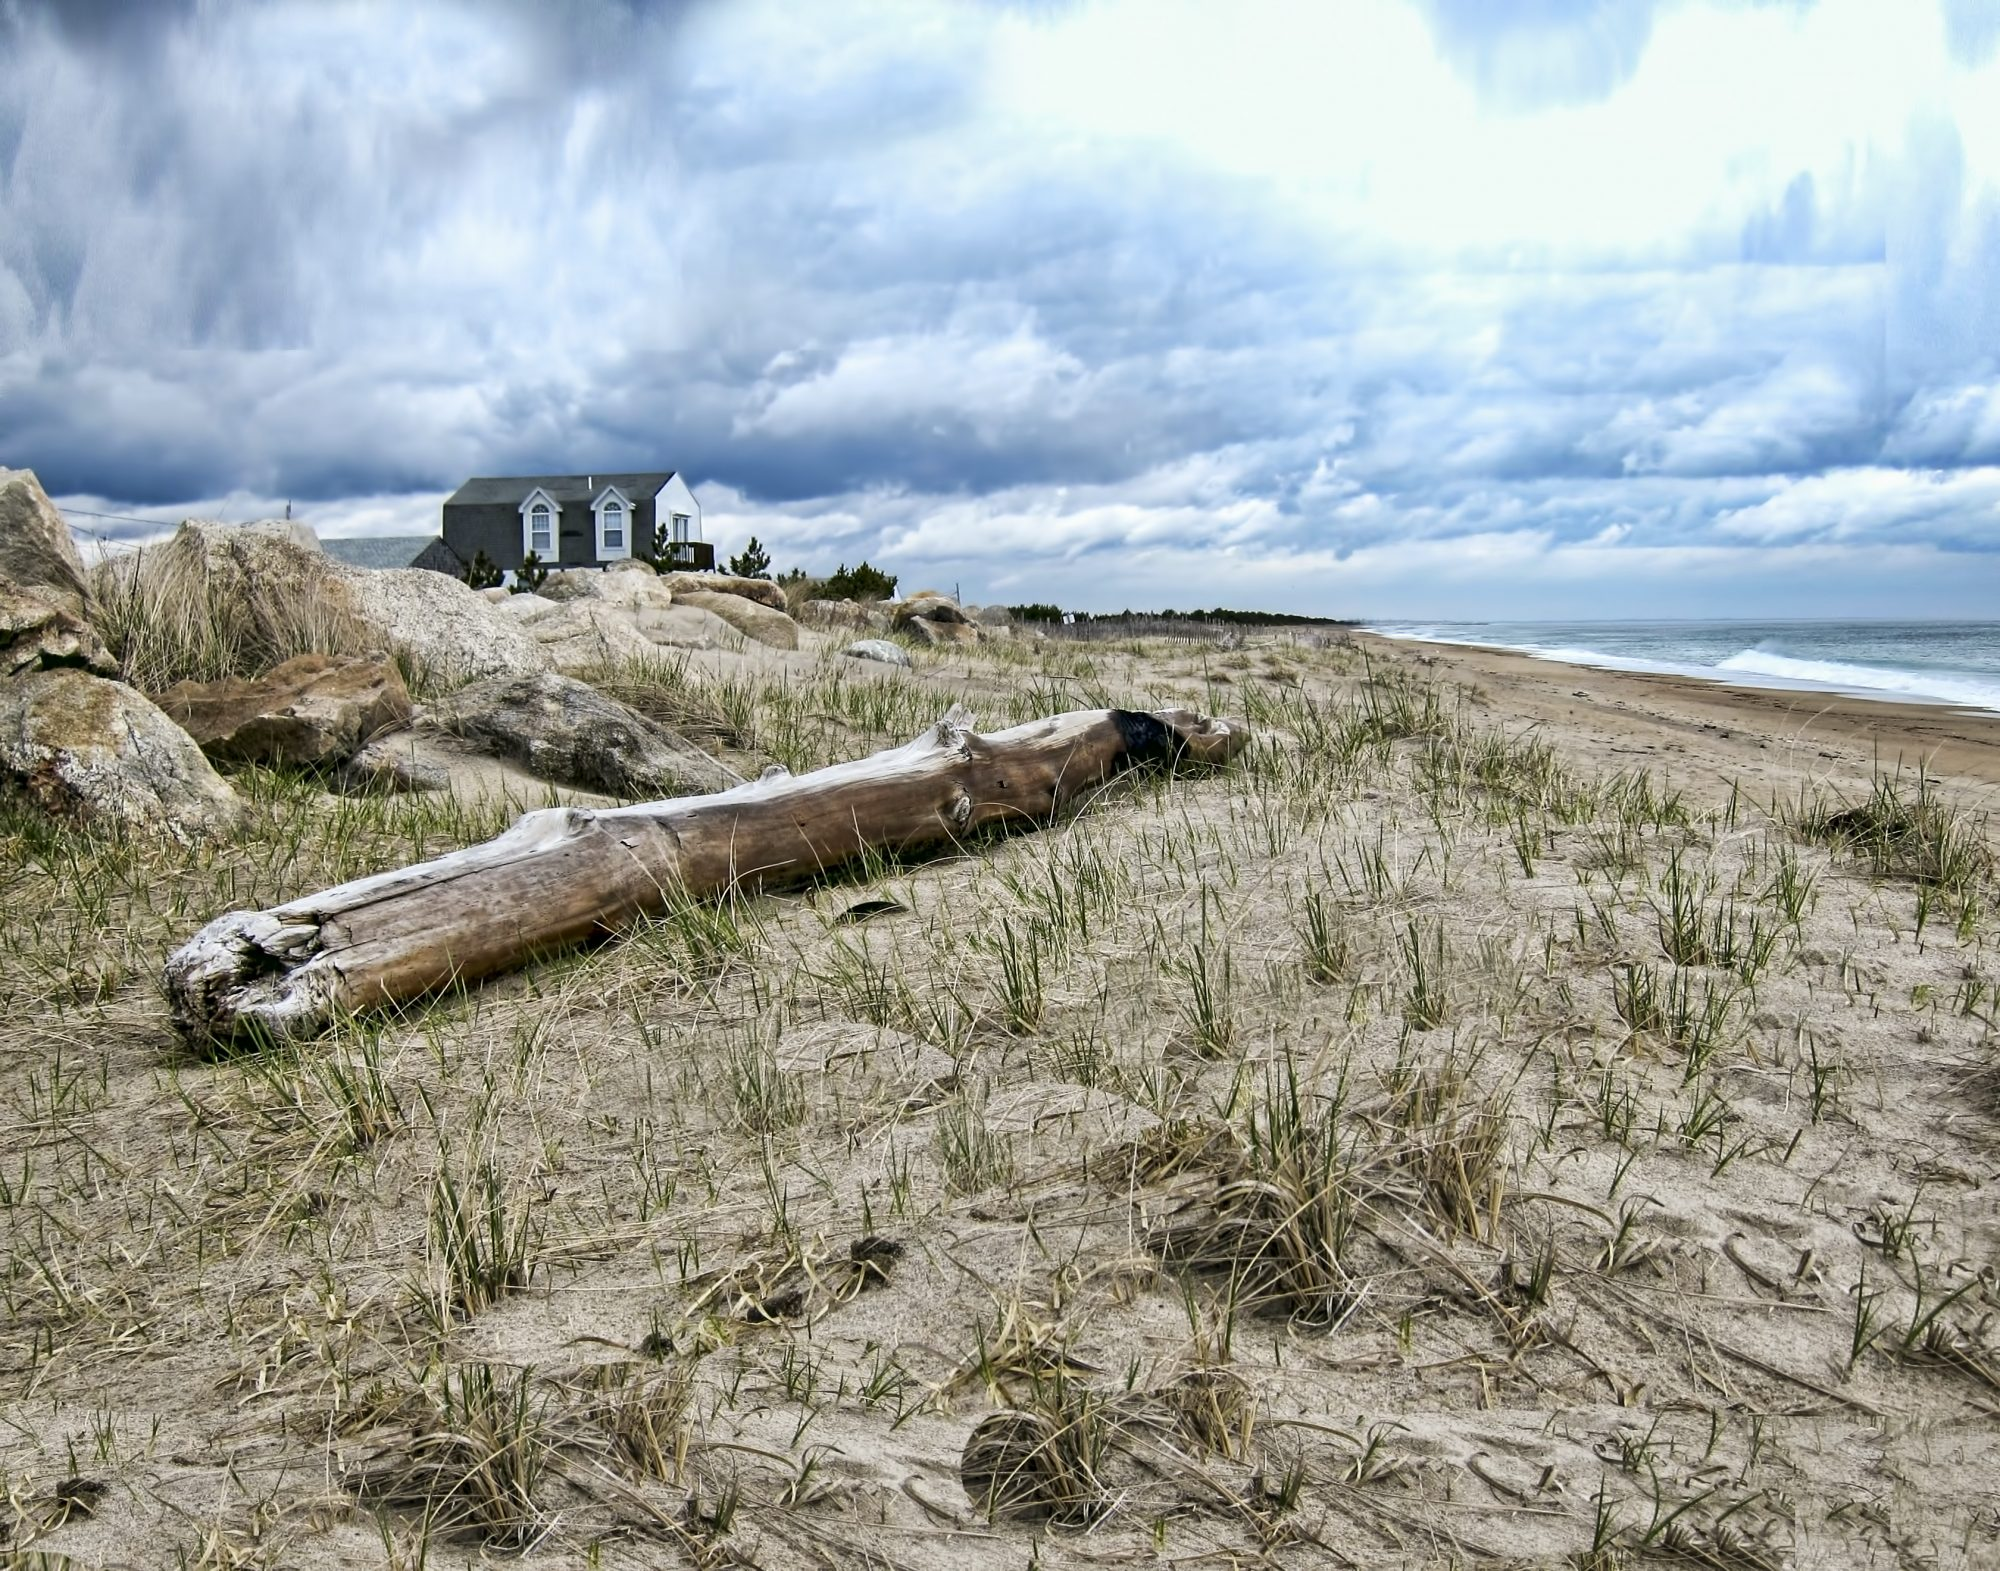 Even the nation's smallest state has a big stretch of beach open to off-road vehicles. East Beach is among the most remote places on the Rhode Island coast, a three-mile stretch of barrier beach separated from the mainland by Ninigret Pond and accessible